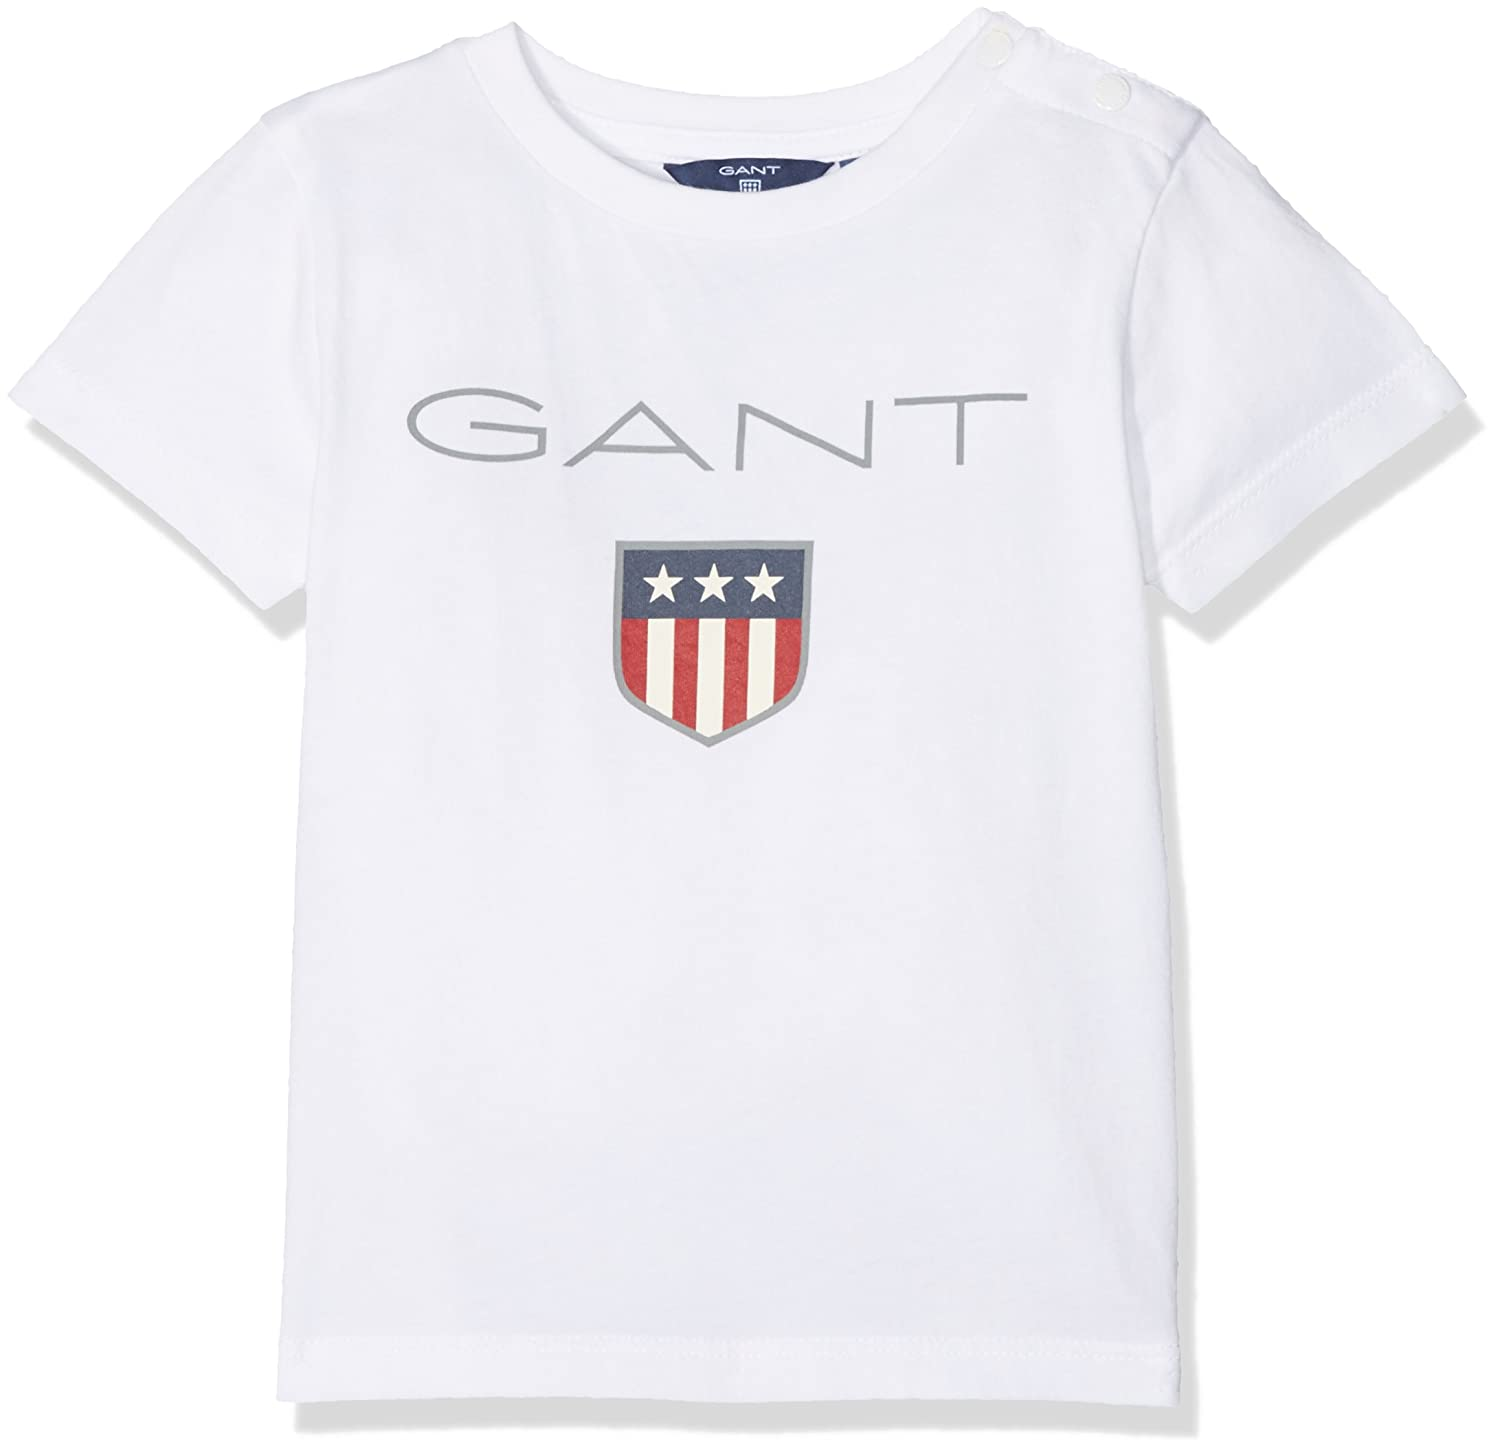 Gant Baby Boy Shield Logo T-Shirt 705114